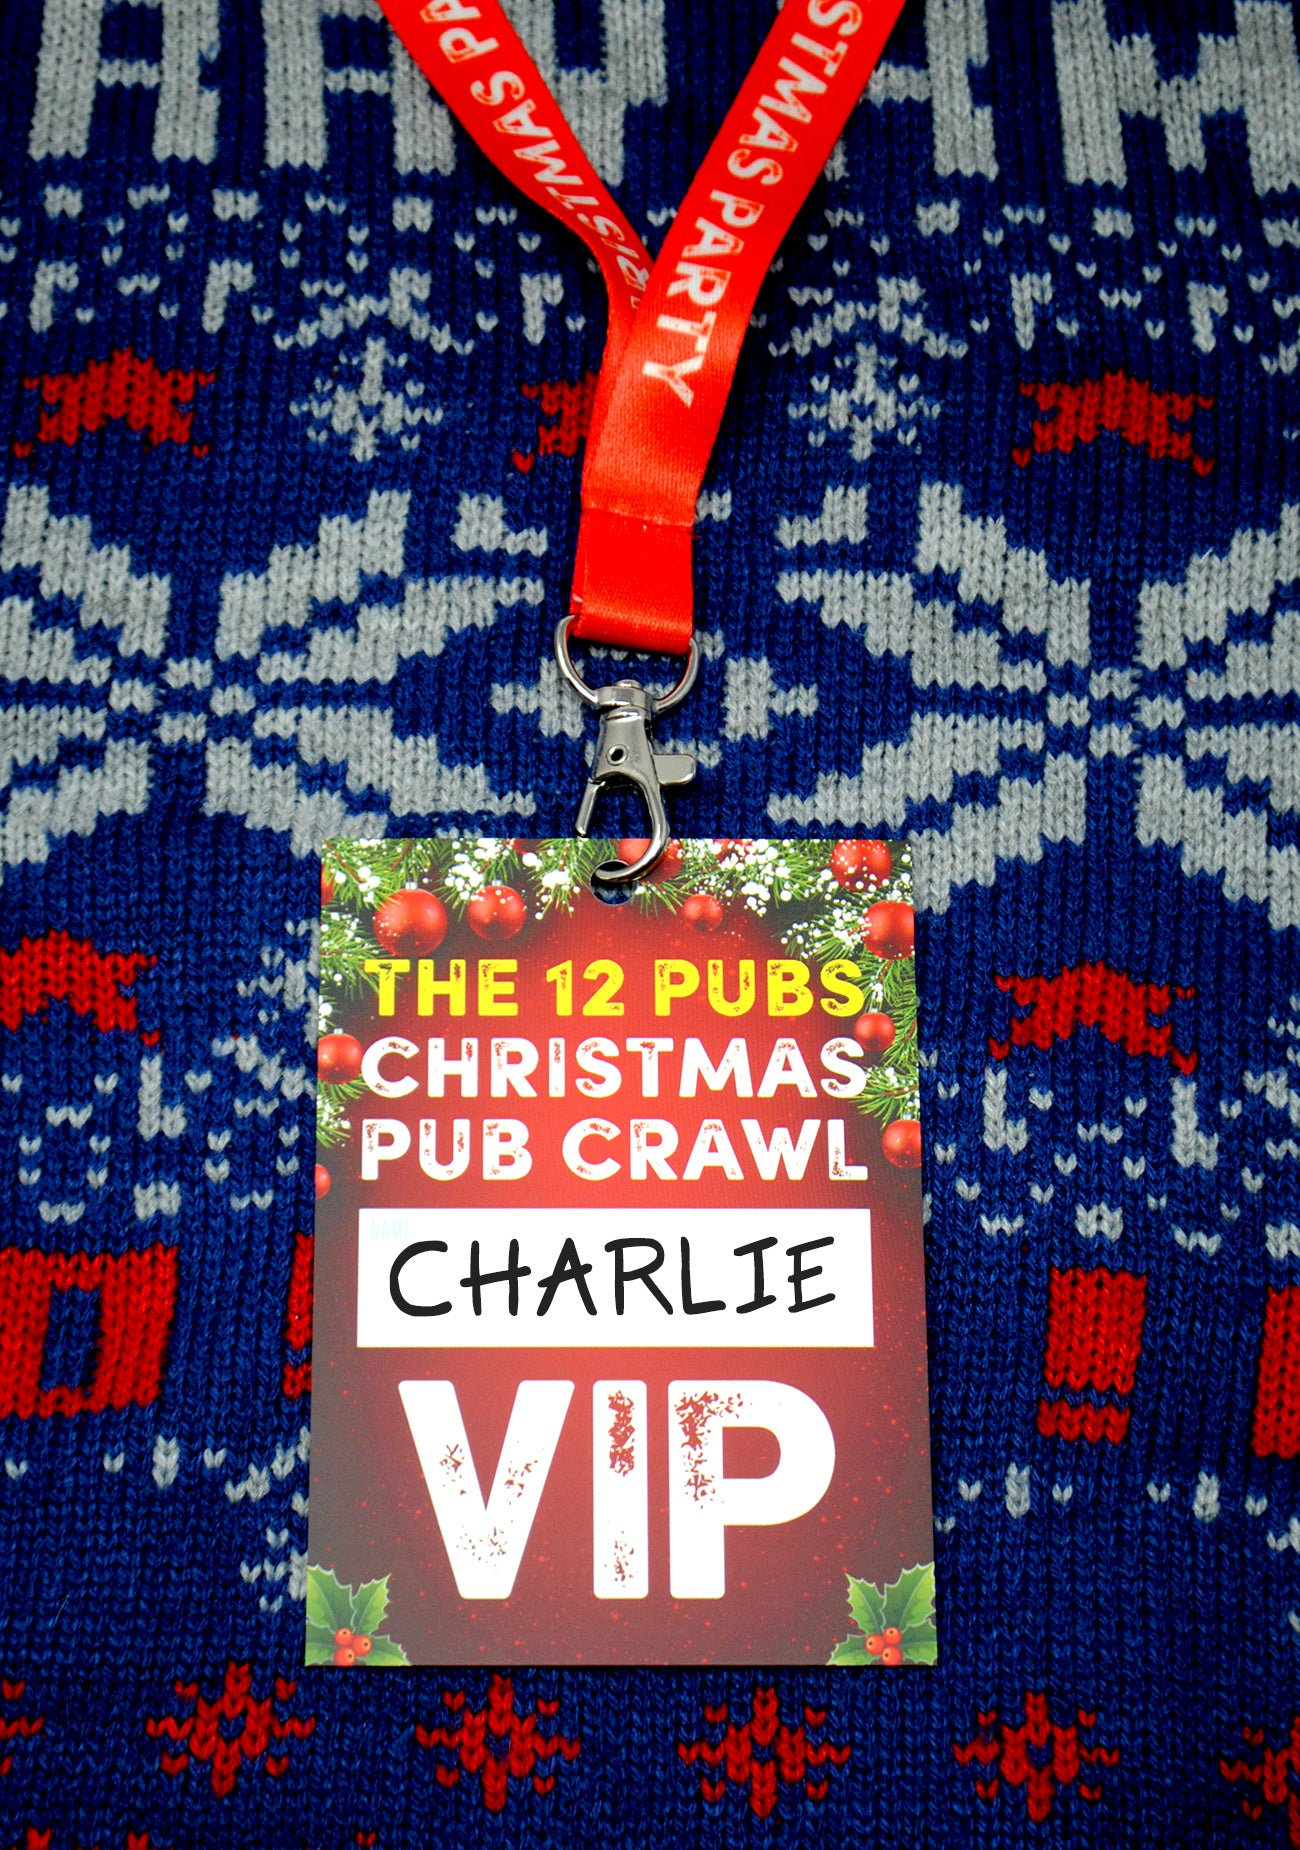 the 12 pubs of christmas pub crawl list vip lanyards